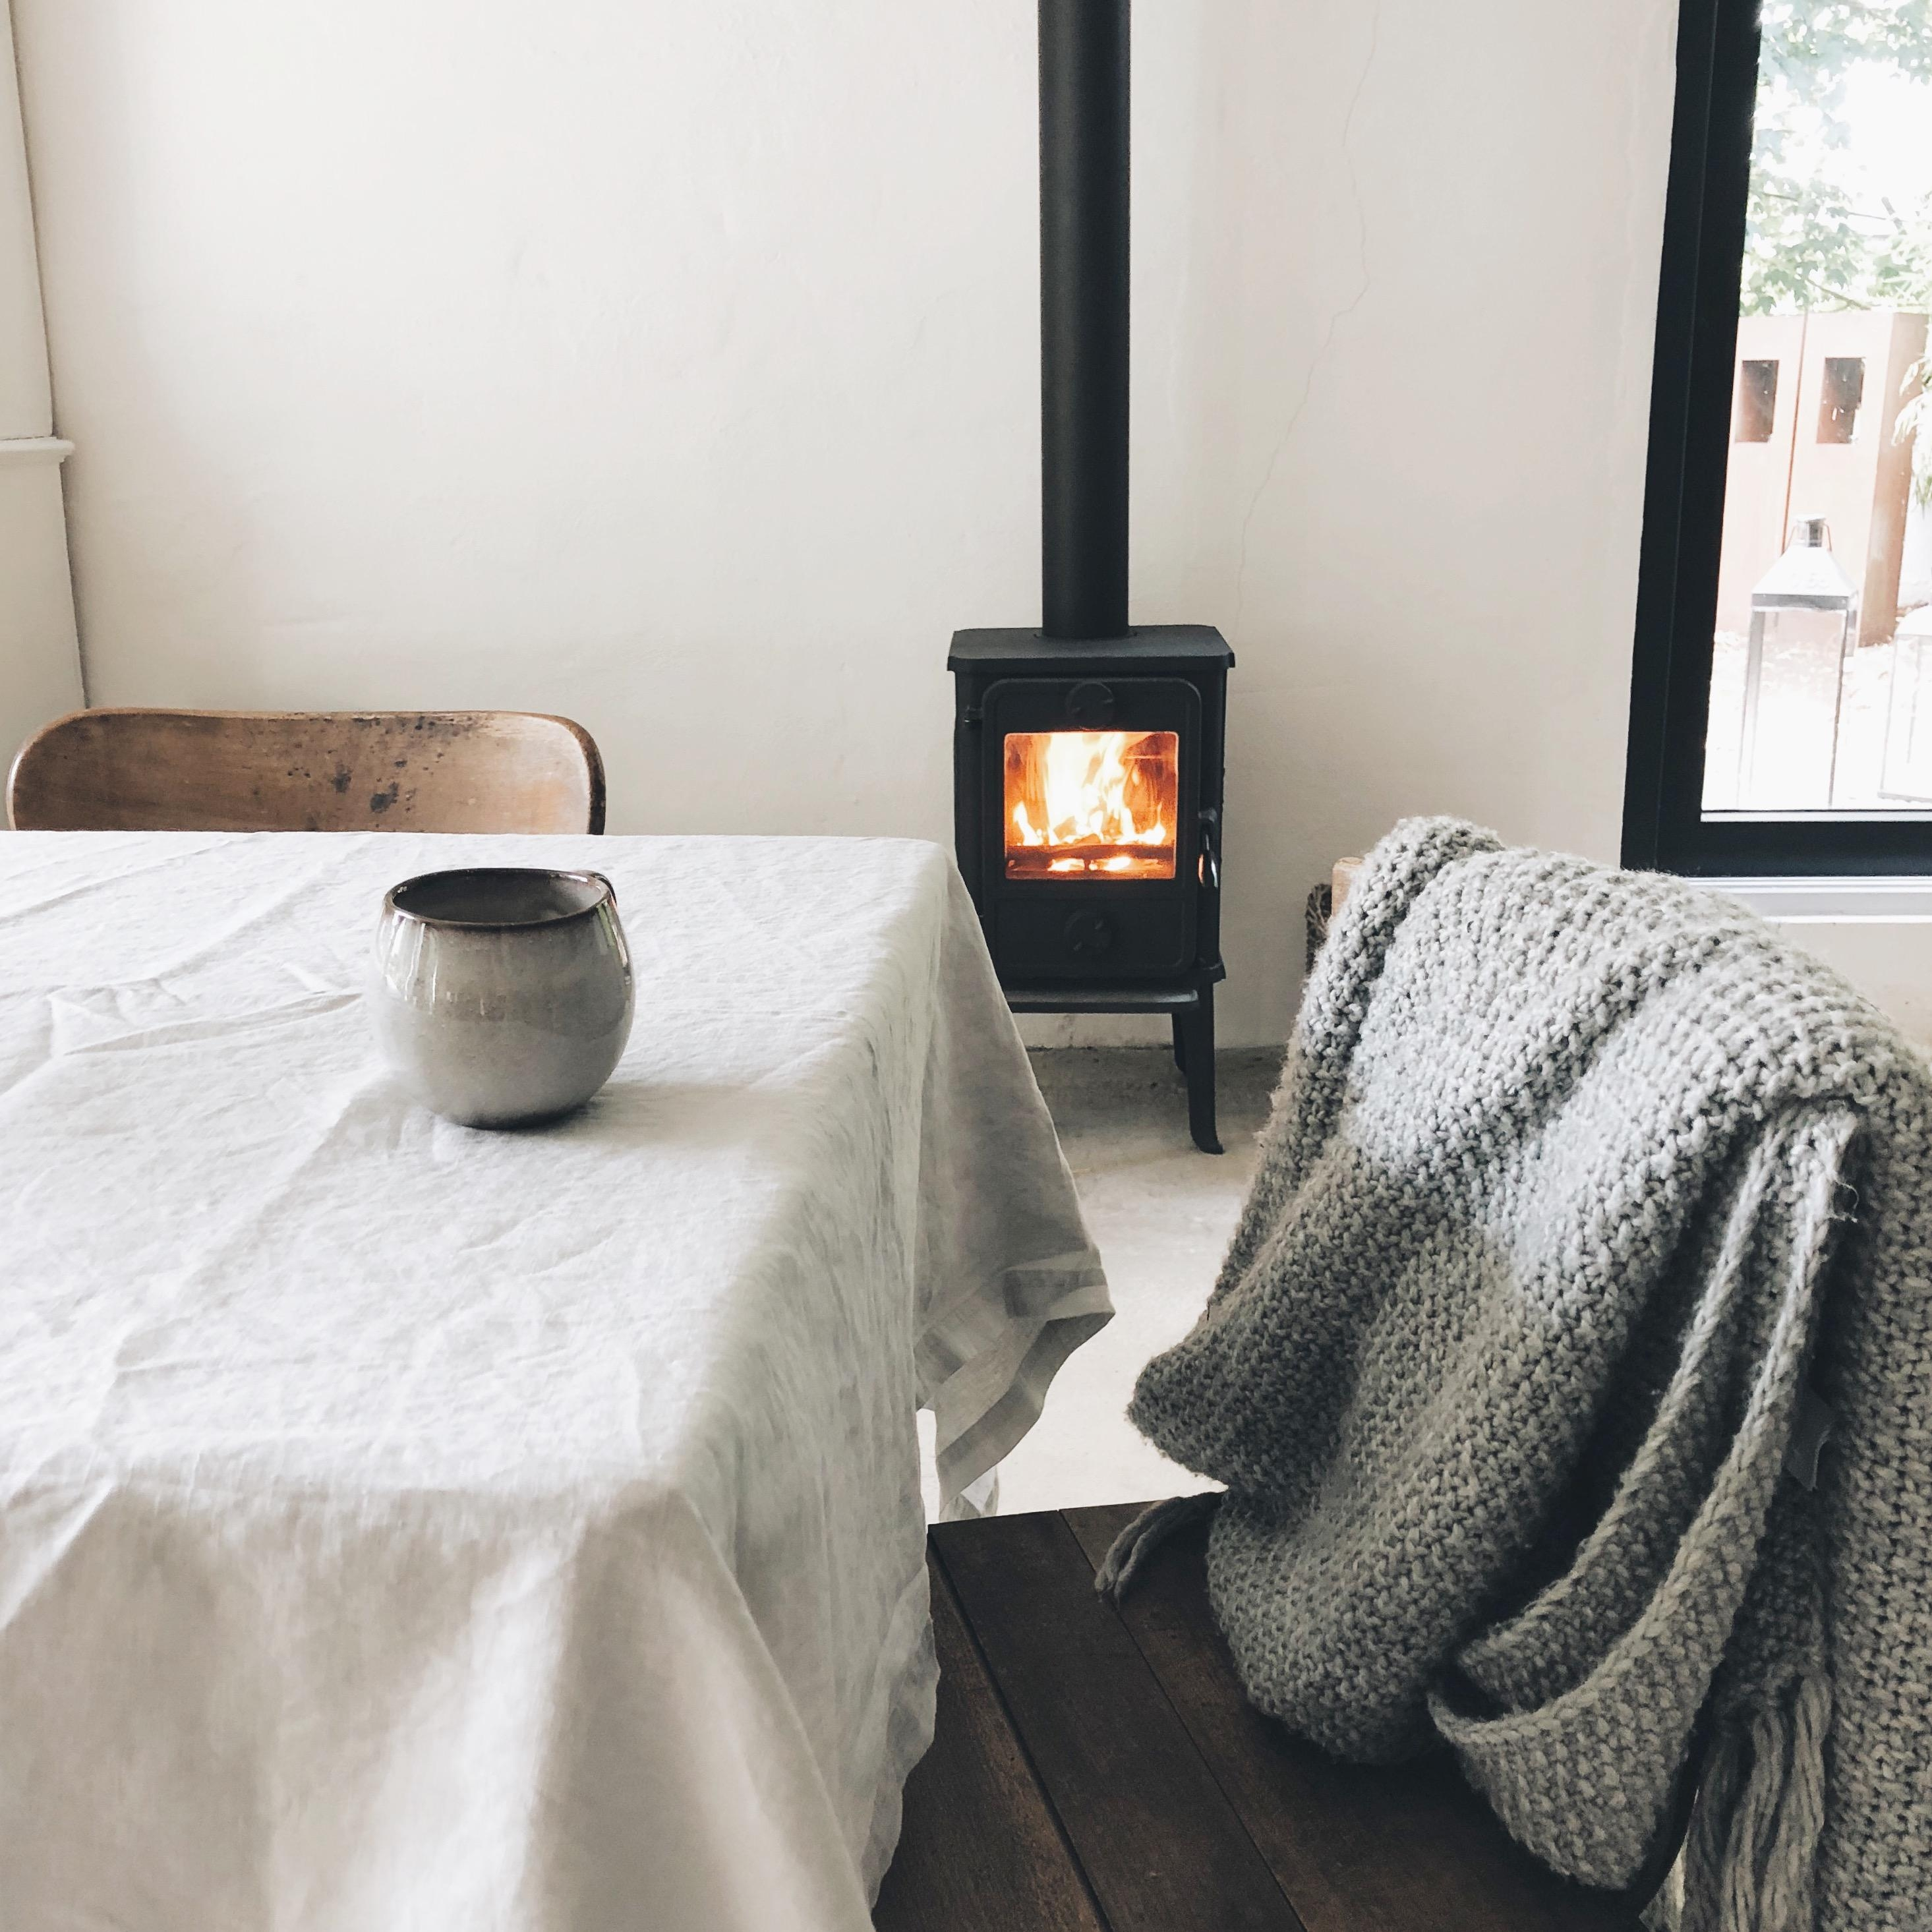 Cozy day 